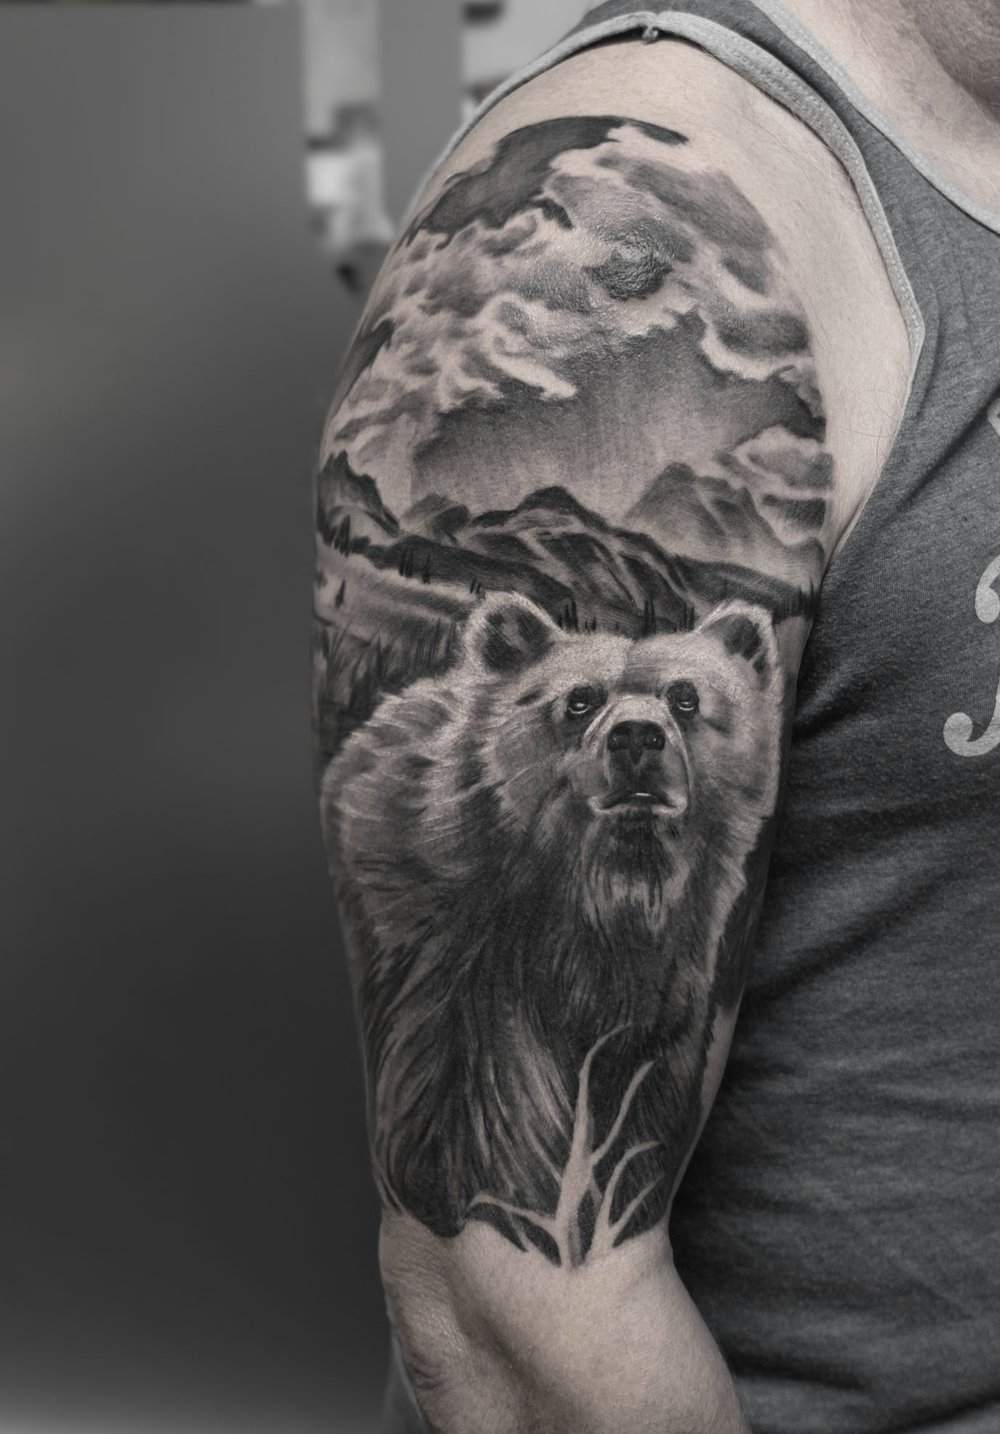 Custom Black and Gray Realism Grizzley Bear Tattoo by Greg at Certified Tattoo Studios Denver Co.jpg